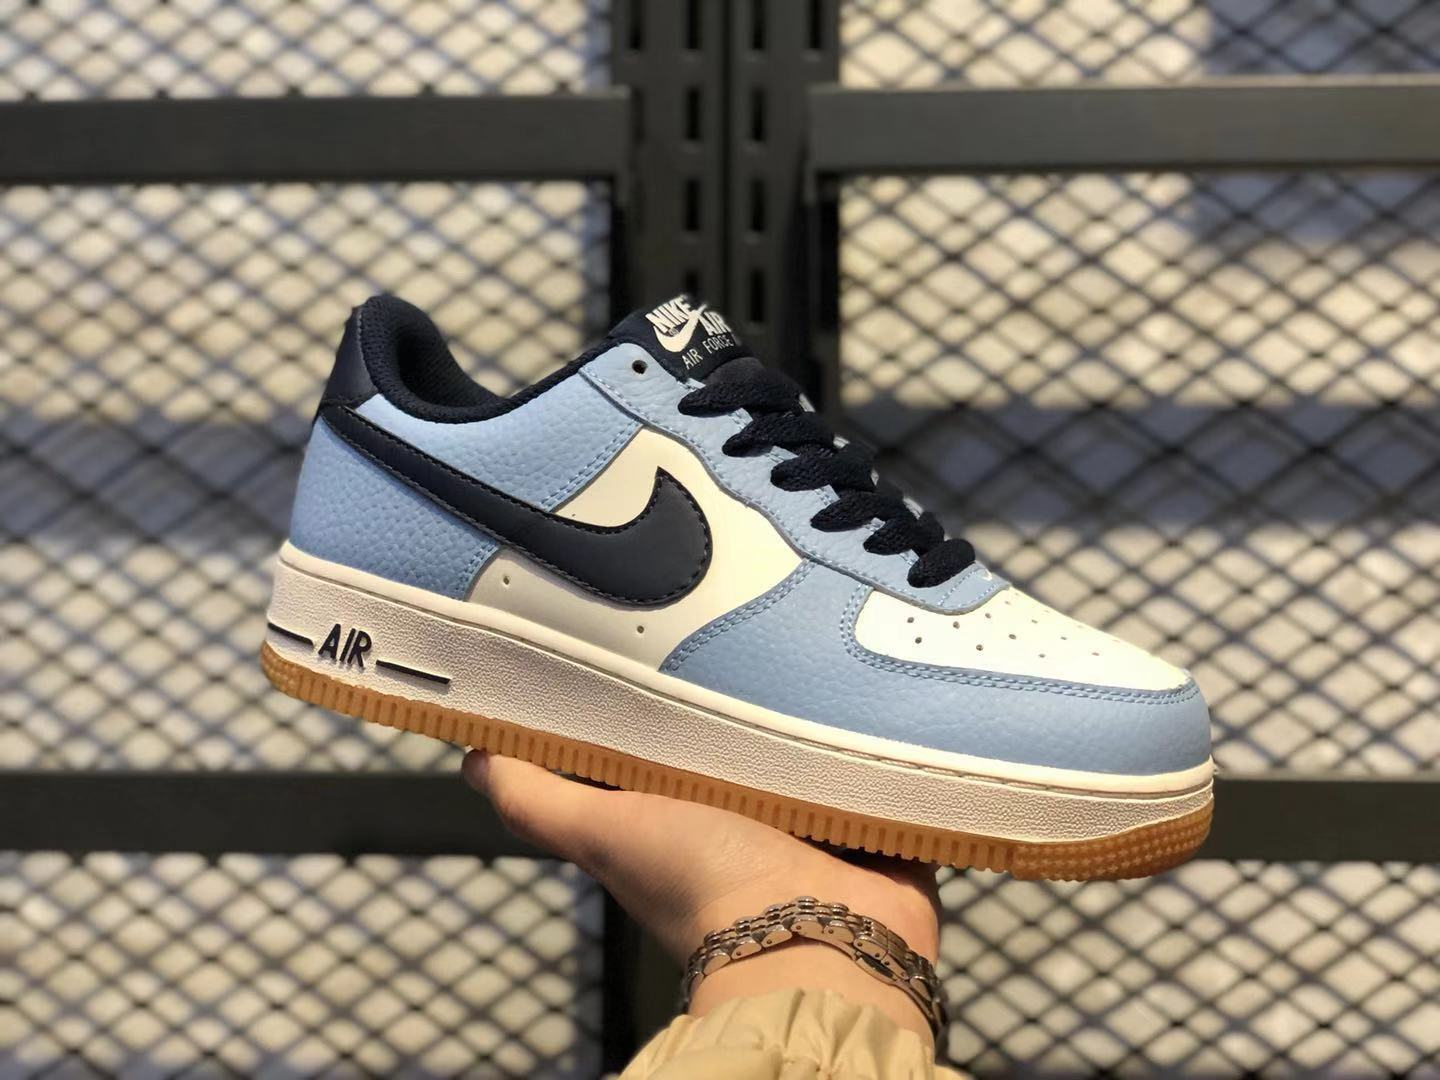 2019 Nike Wmns Air Force 1 Low Premium Light Blue Sneakers For Online Sale